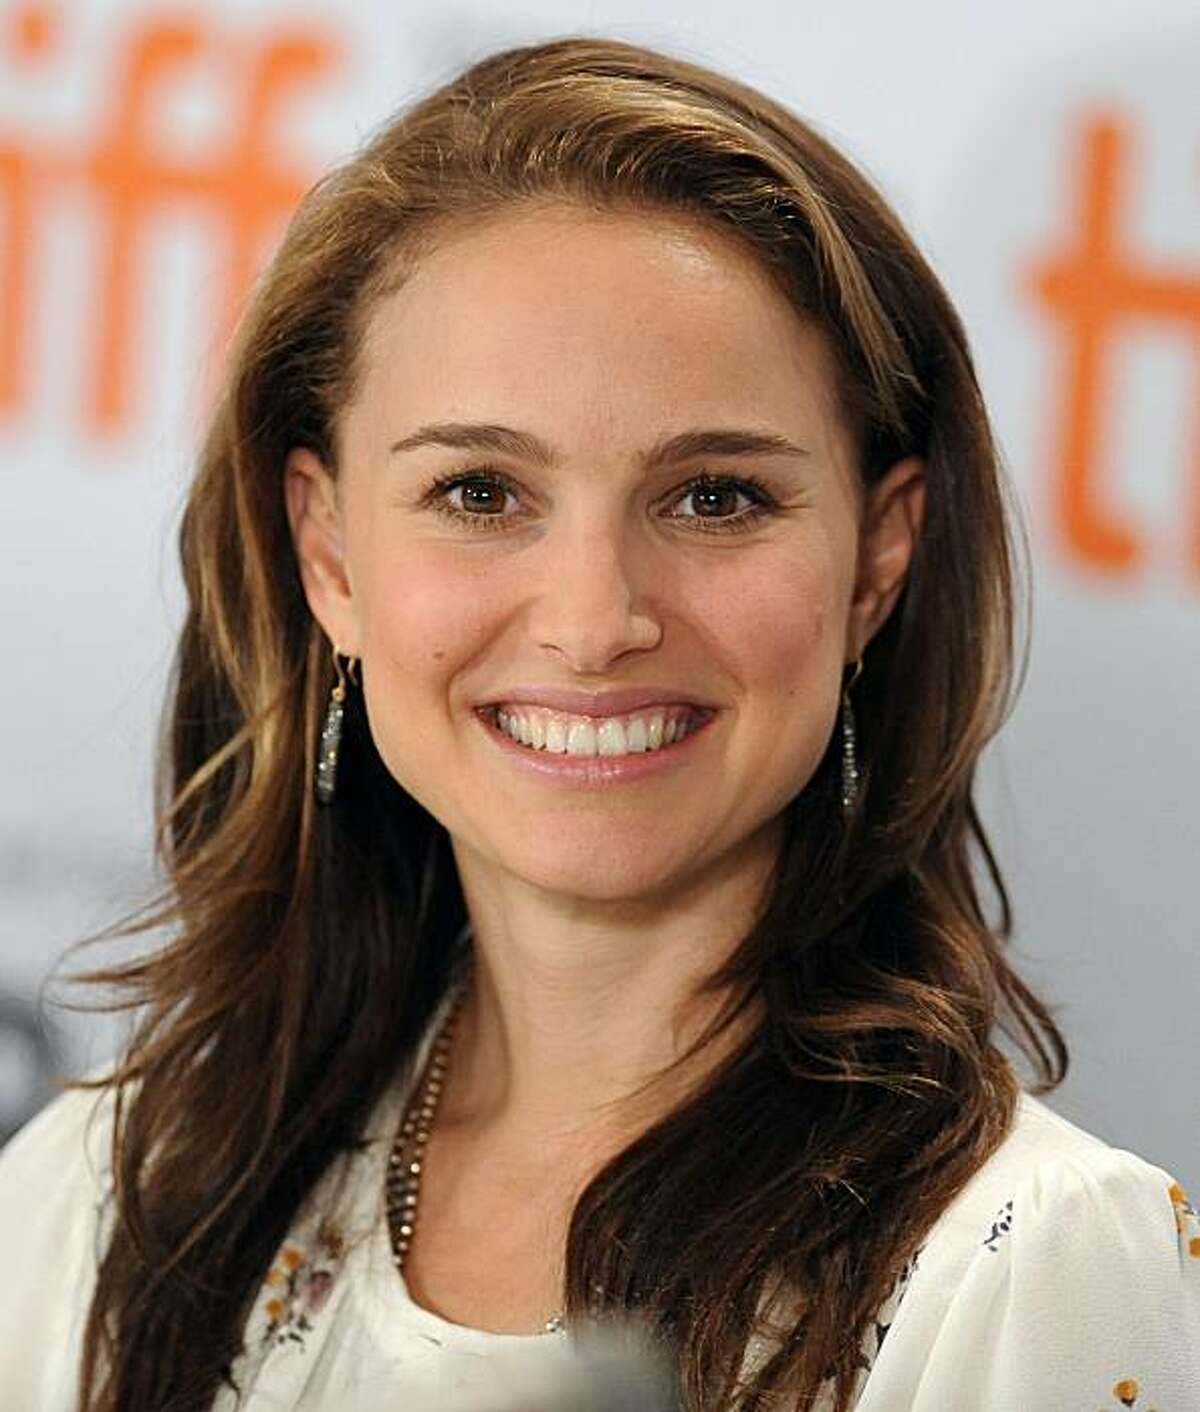 """Actress Natalie Portman participates in a news conference for the film """"Love And Other Impossible Pursuits"""" during the Toronto International Film Festival on Wednesday, Sept. 16, 2009 in Toronto."""